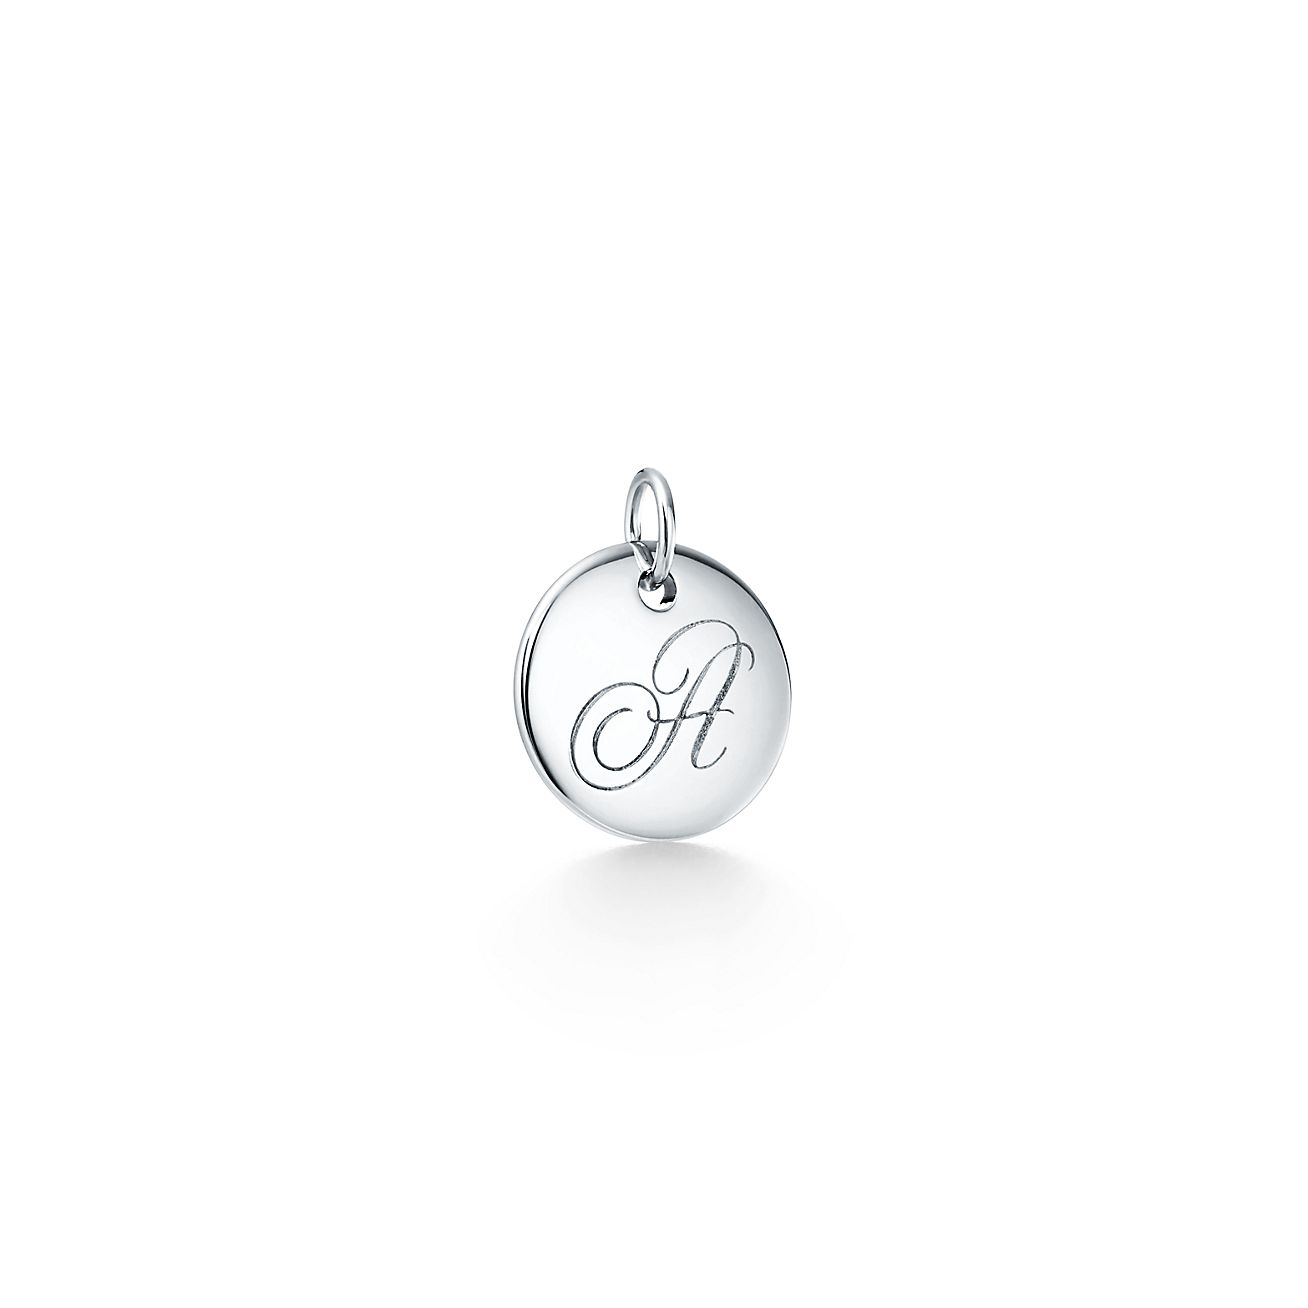 Letter H Charm Initial Charm Custom Silver Letter Handmade Charm Charm for Necklace or Bracelet Mother/'s Day